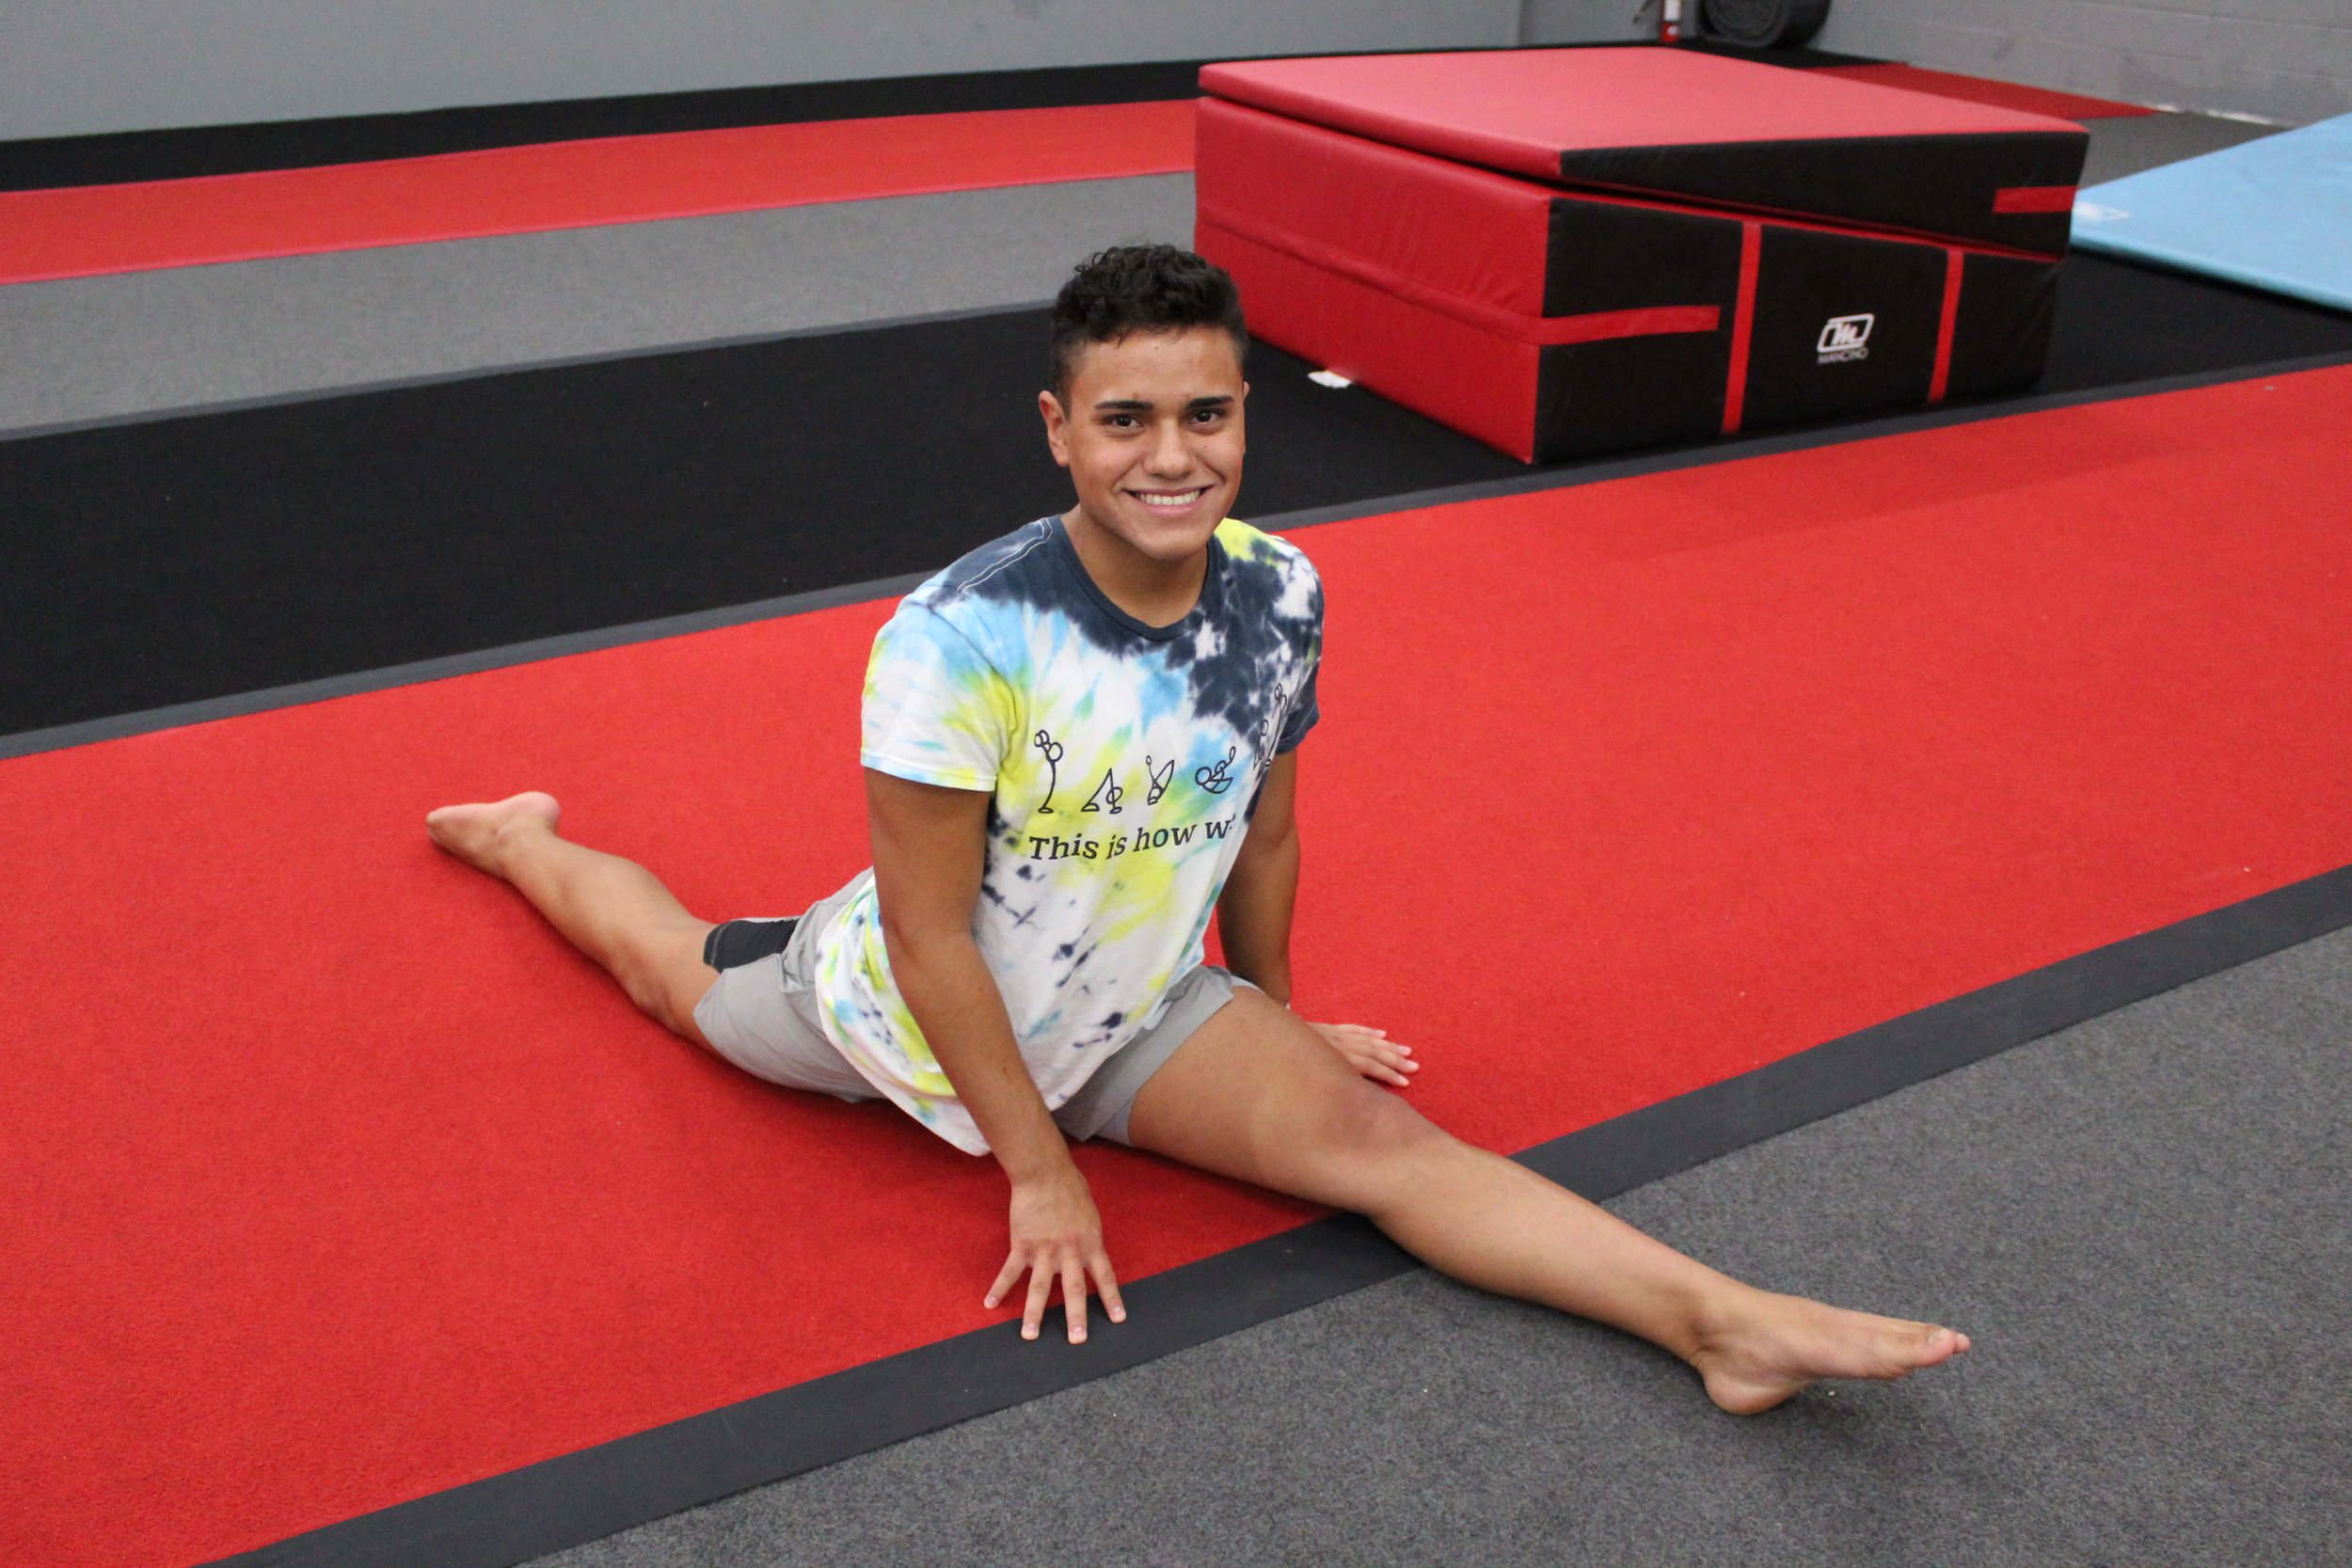 Axel Rios, Stunting and Tumbling